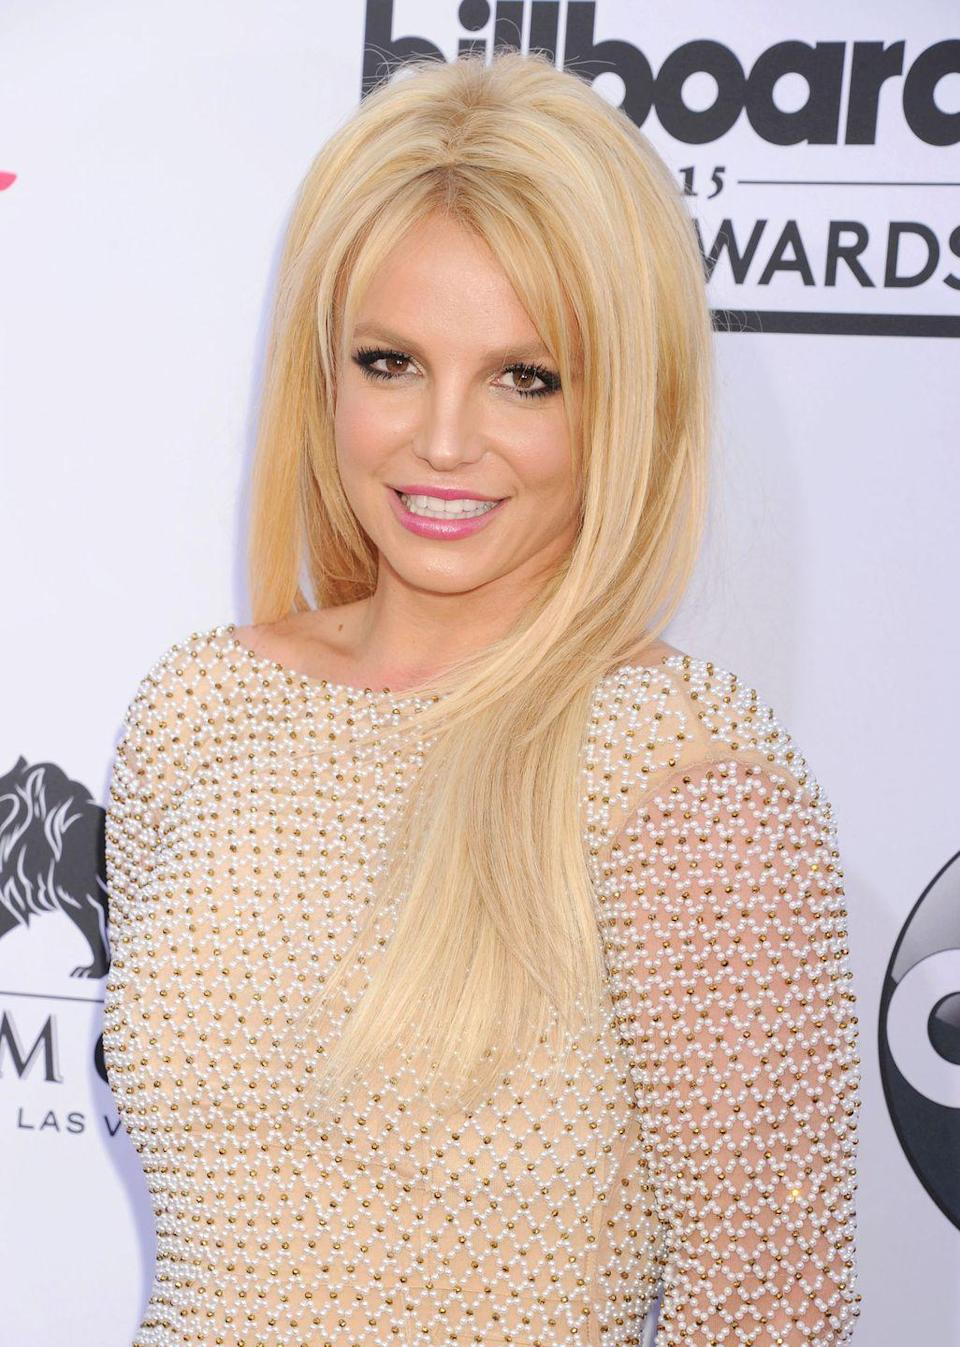 <p>The Billboard Music Awards called for more volume and an icier blonde hue. I'm not mad at it.</p>